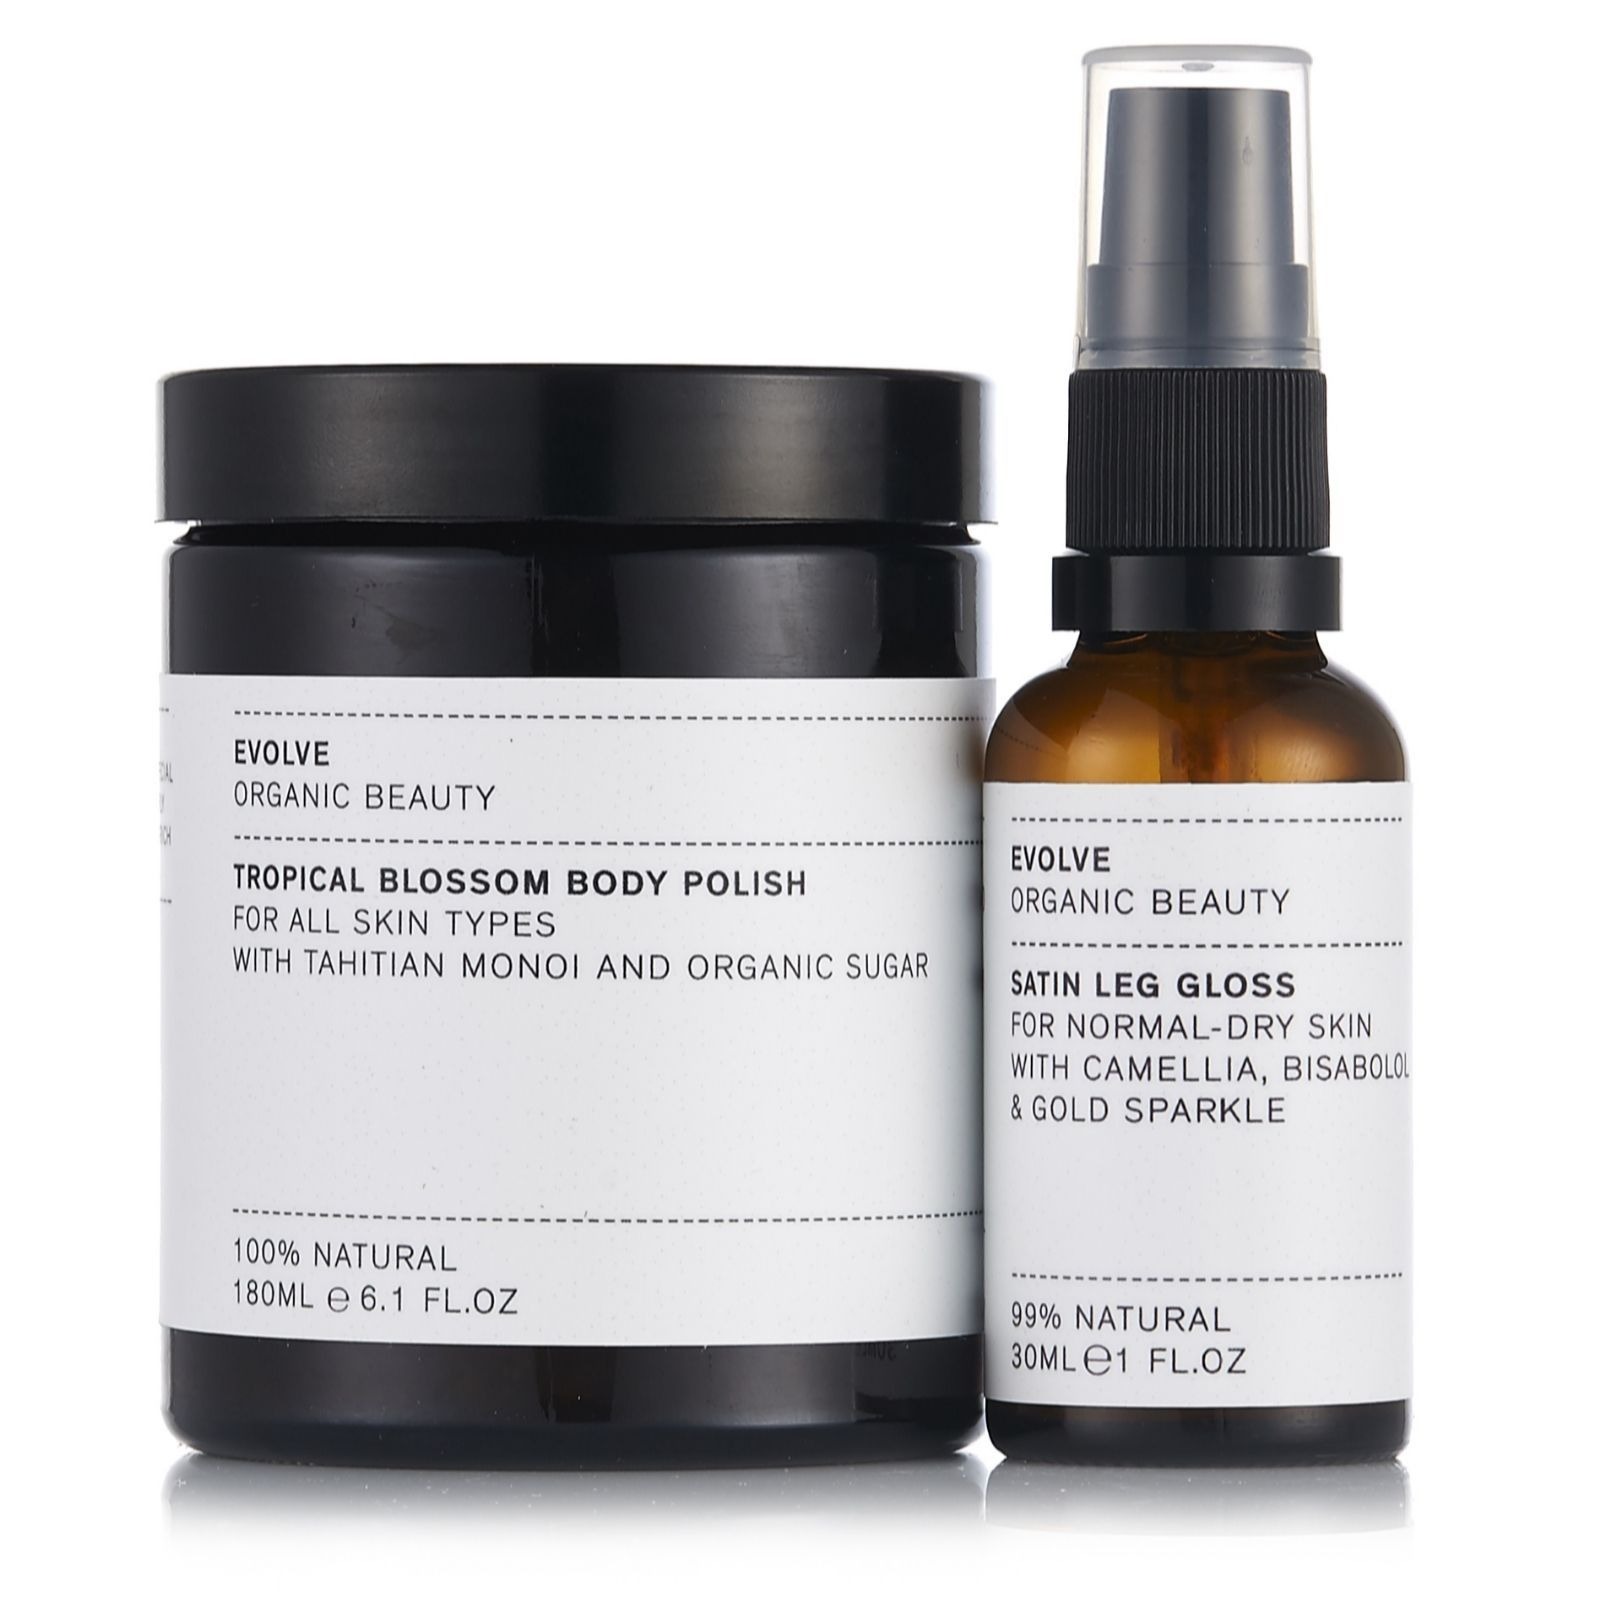 This body duo by Evolve Beauty features the Tropical